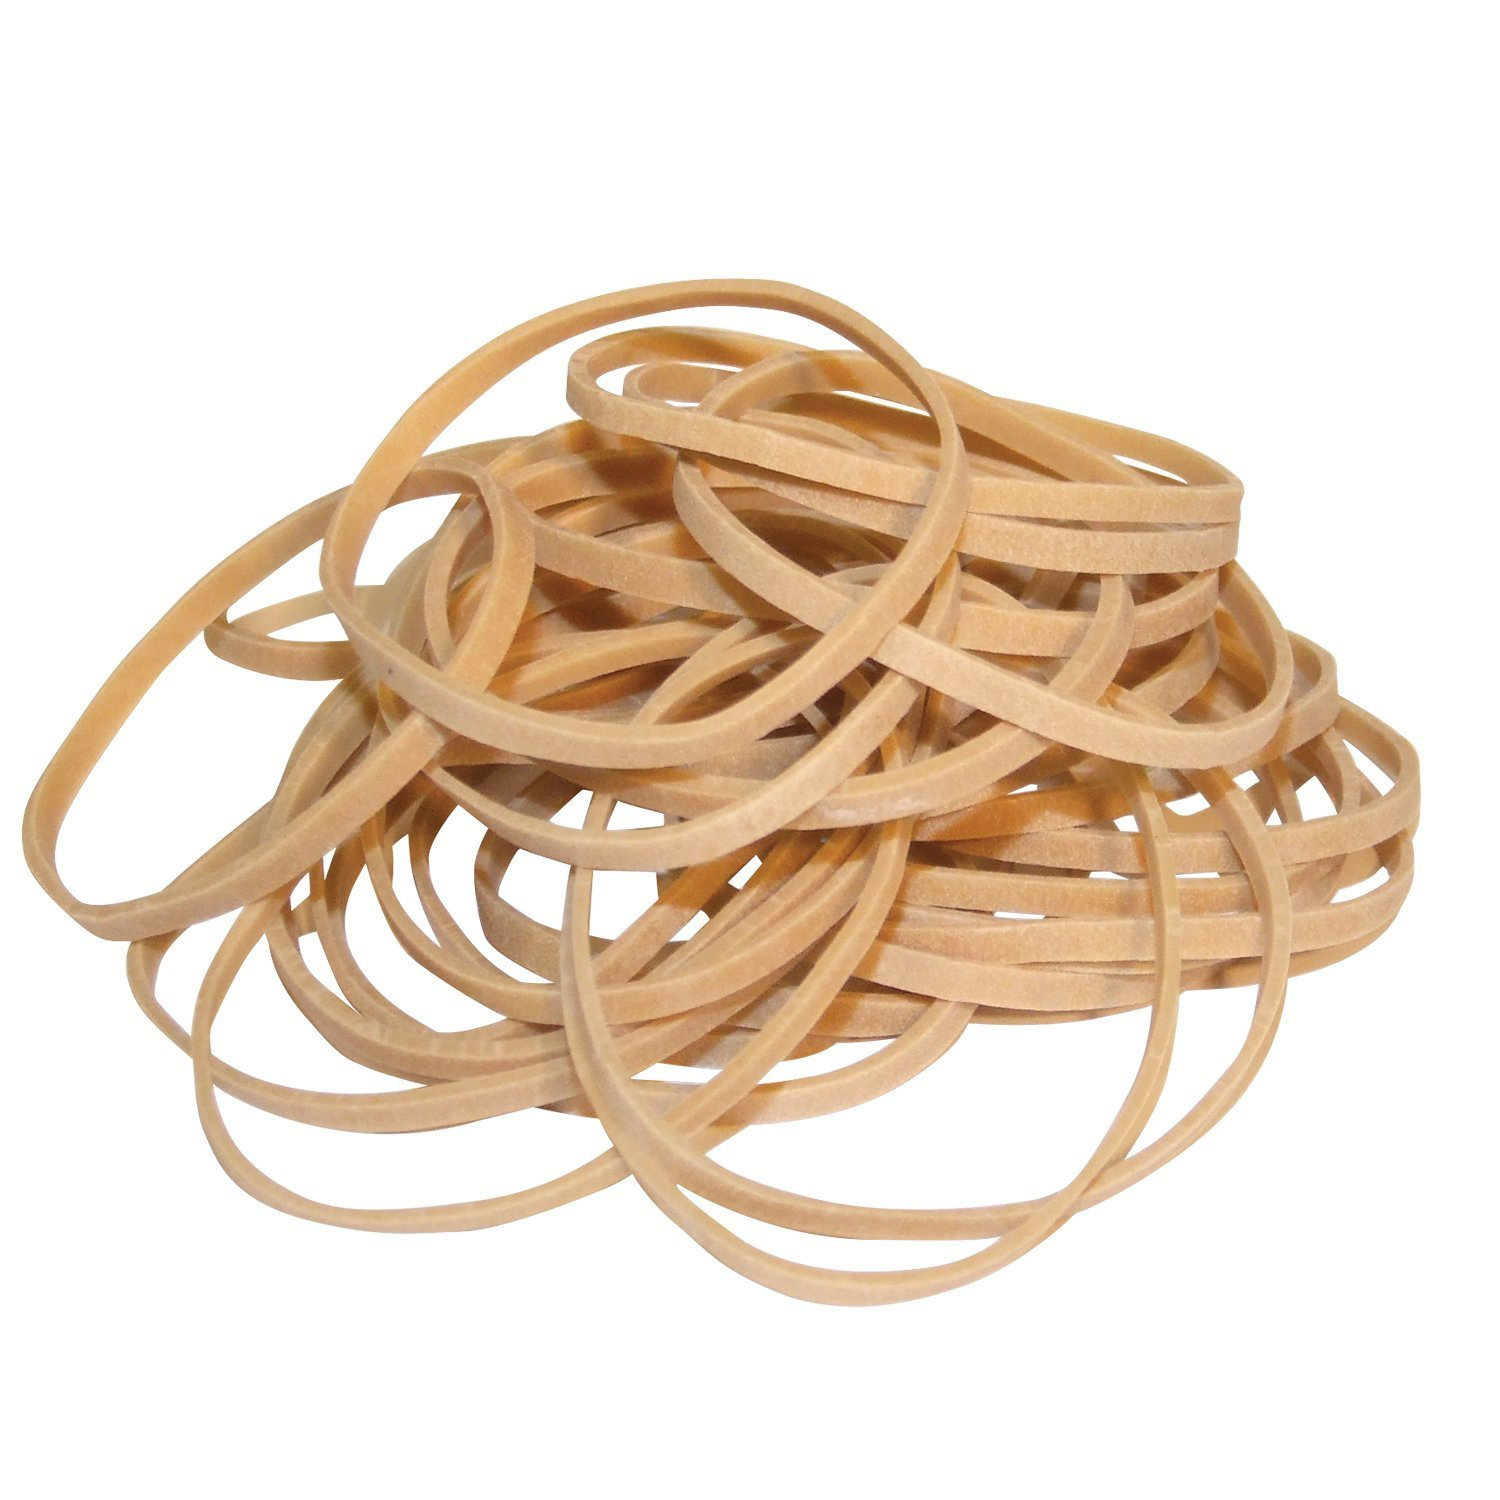 Rubber Bands ValueX Rubber Bands (No 16) 1.5mmx60mm 454g